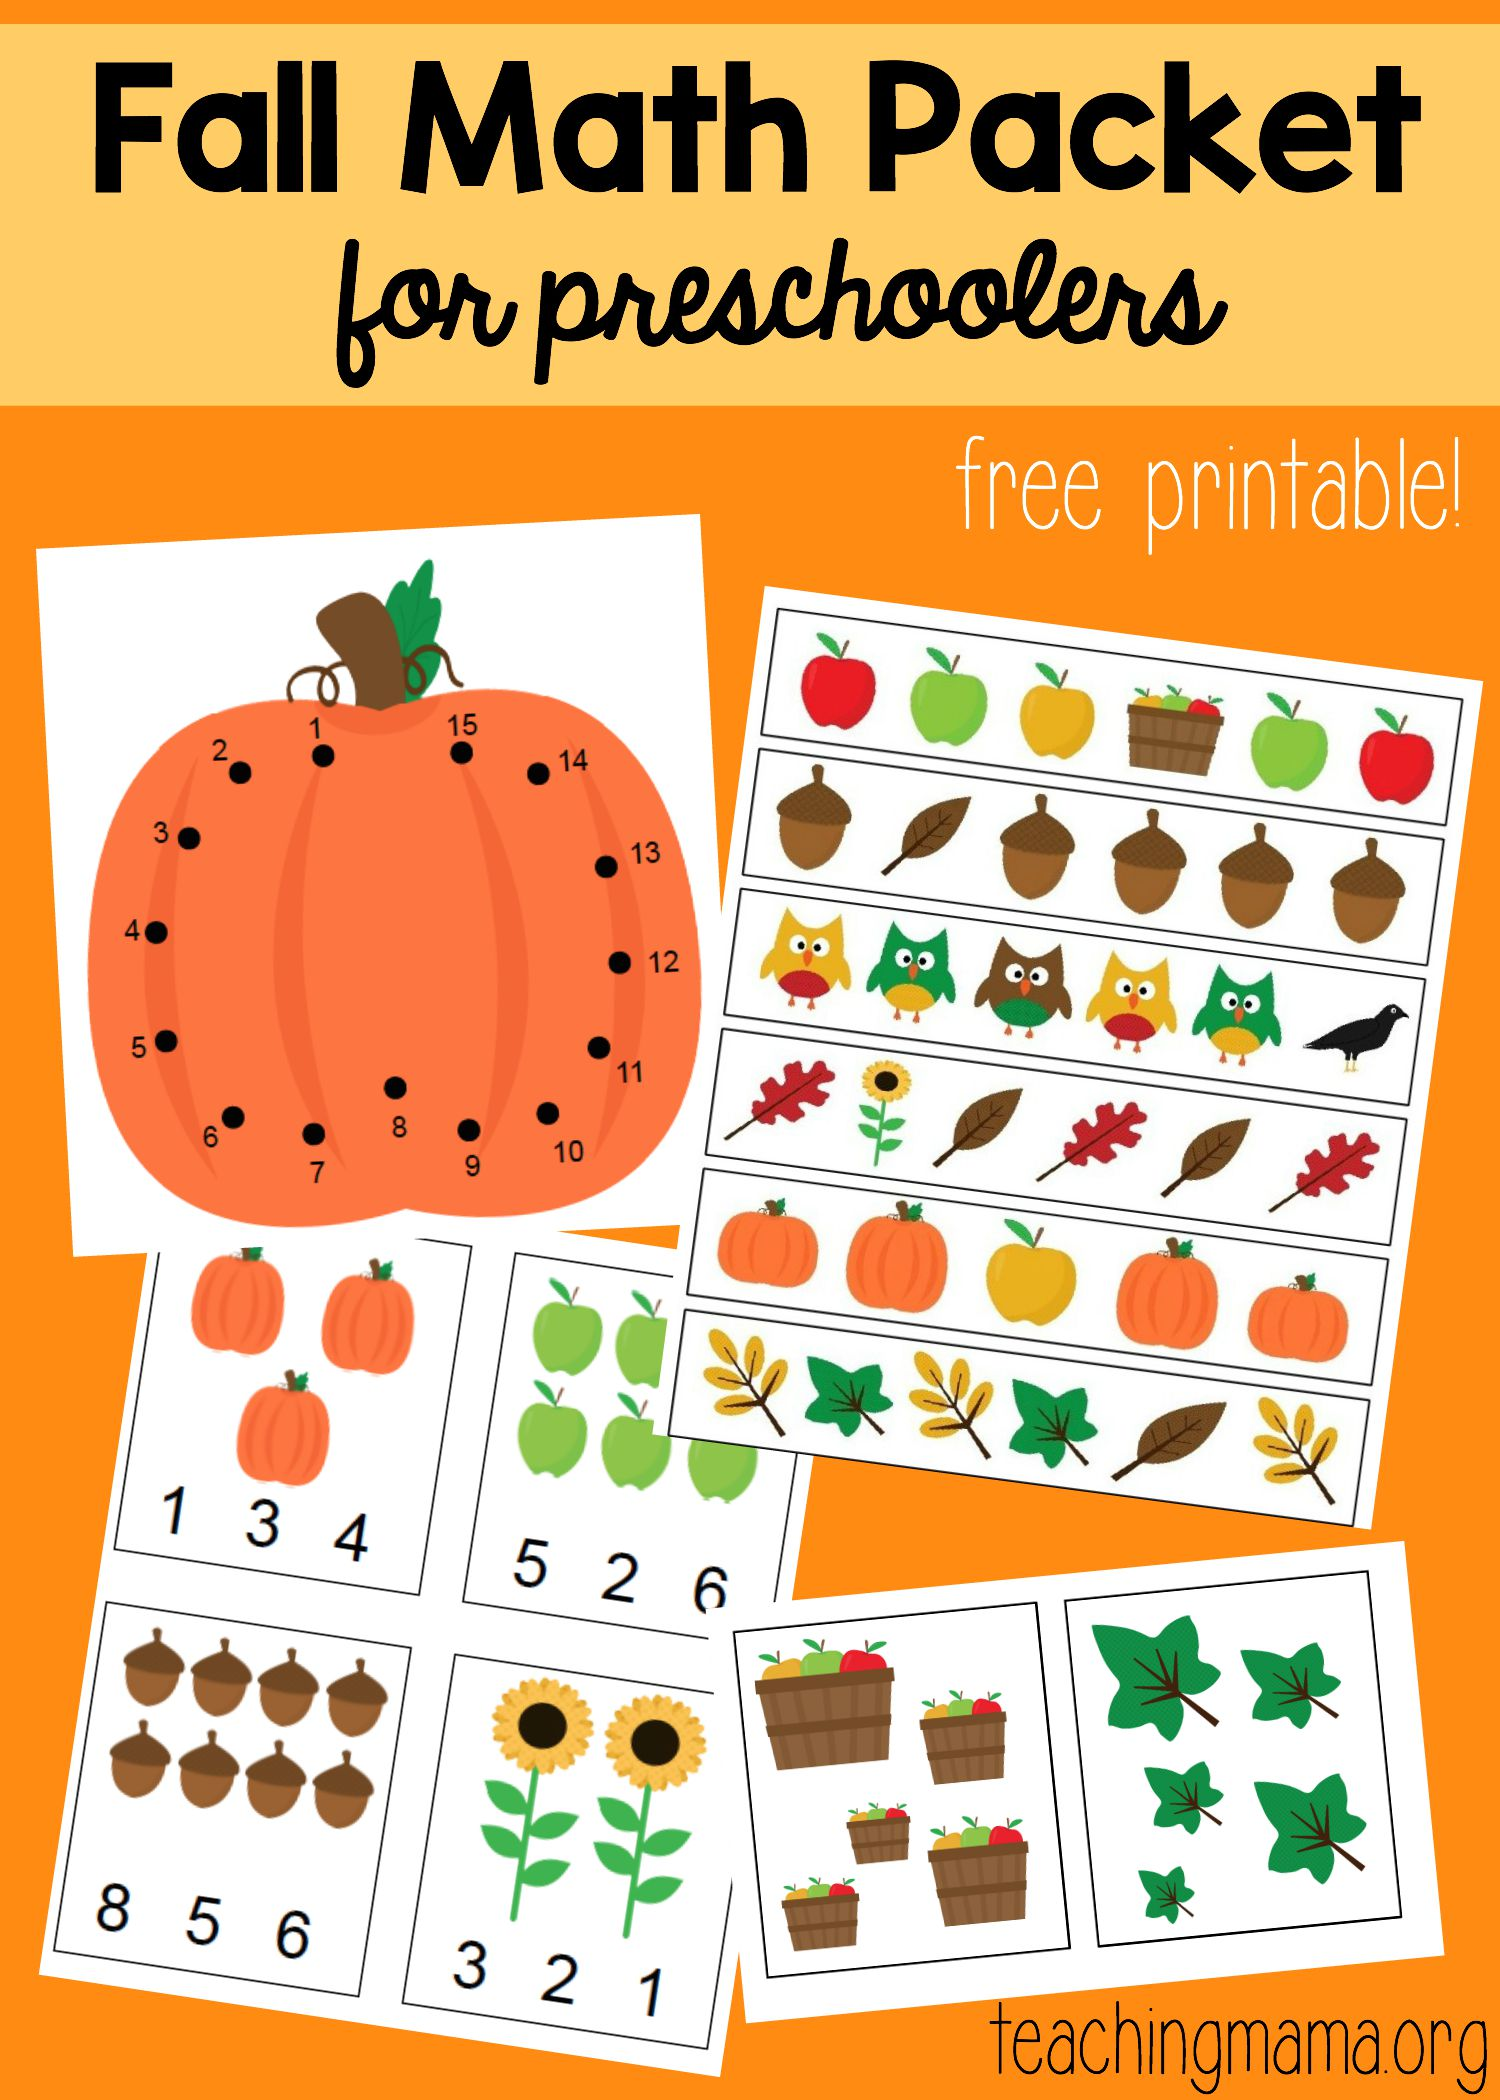 Fall Math Packet for Preschoolers